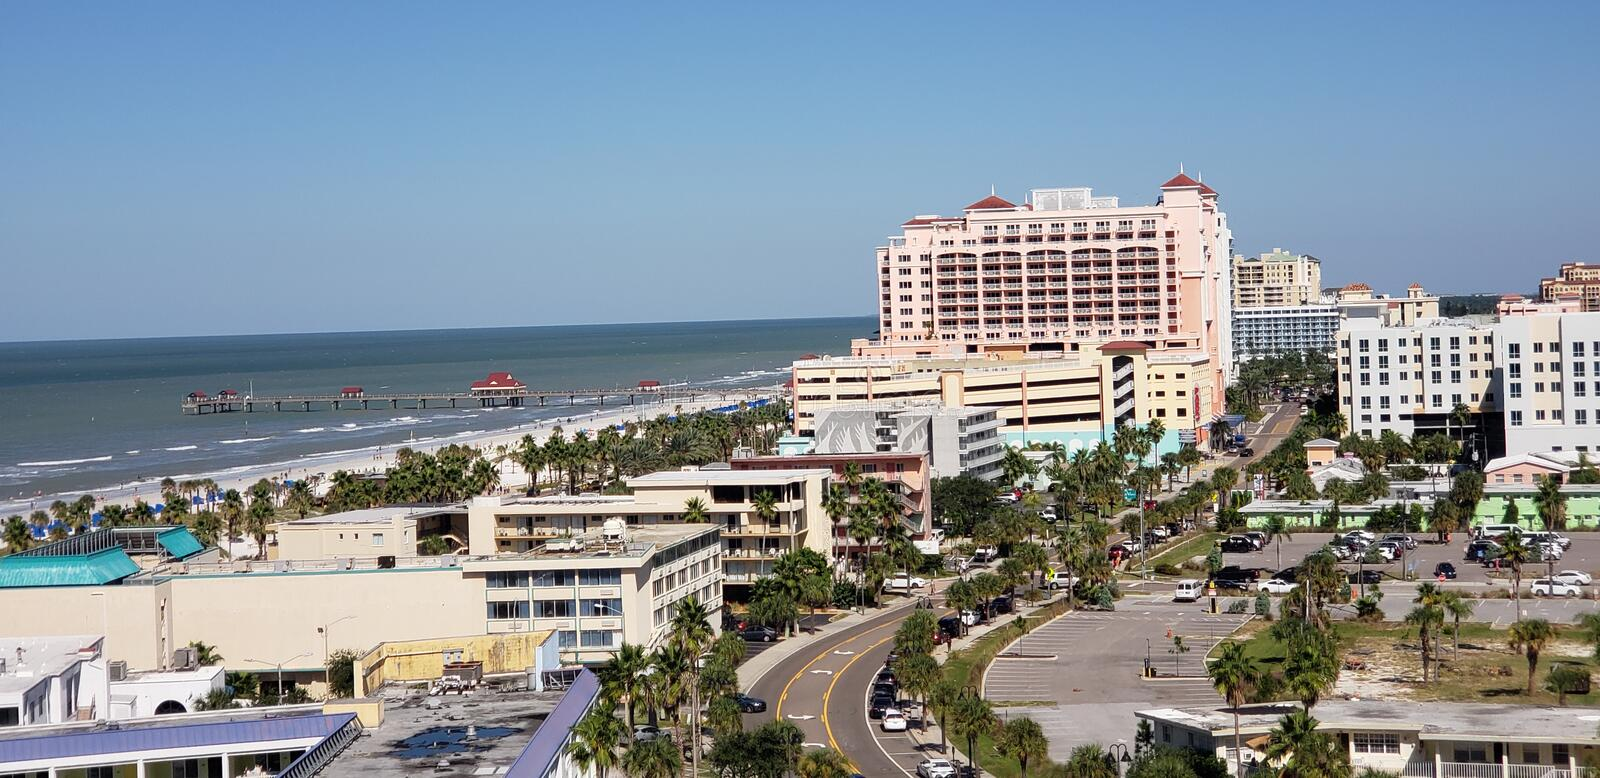 Clearwater beach, just voted the 1 beach in America. Clearwater beach has crystal clear water and super white and soft sand with award winning accommodations on stock photos